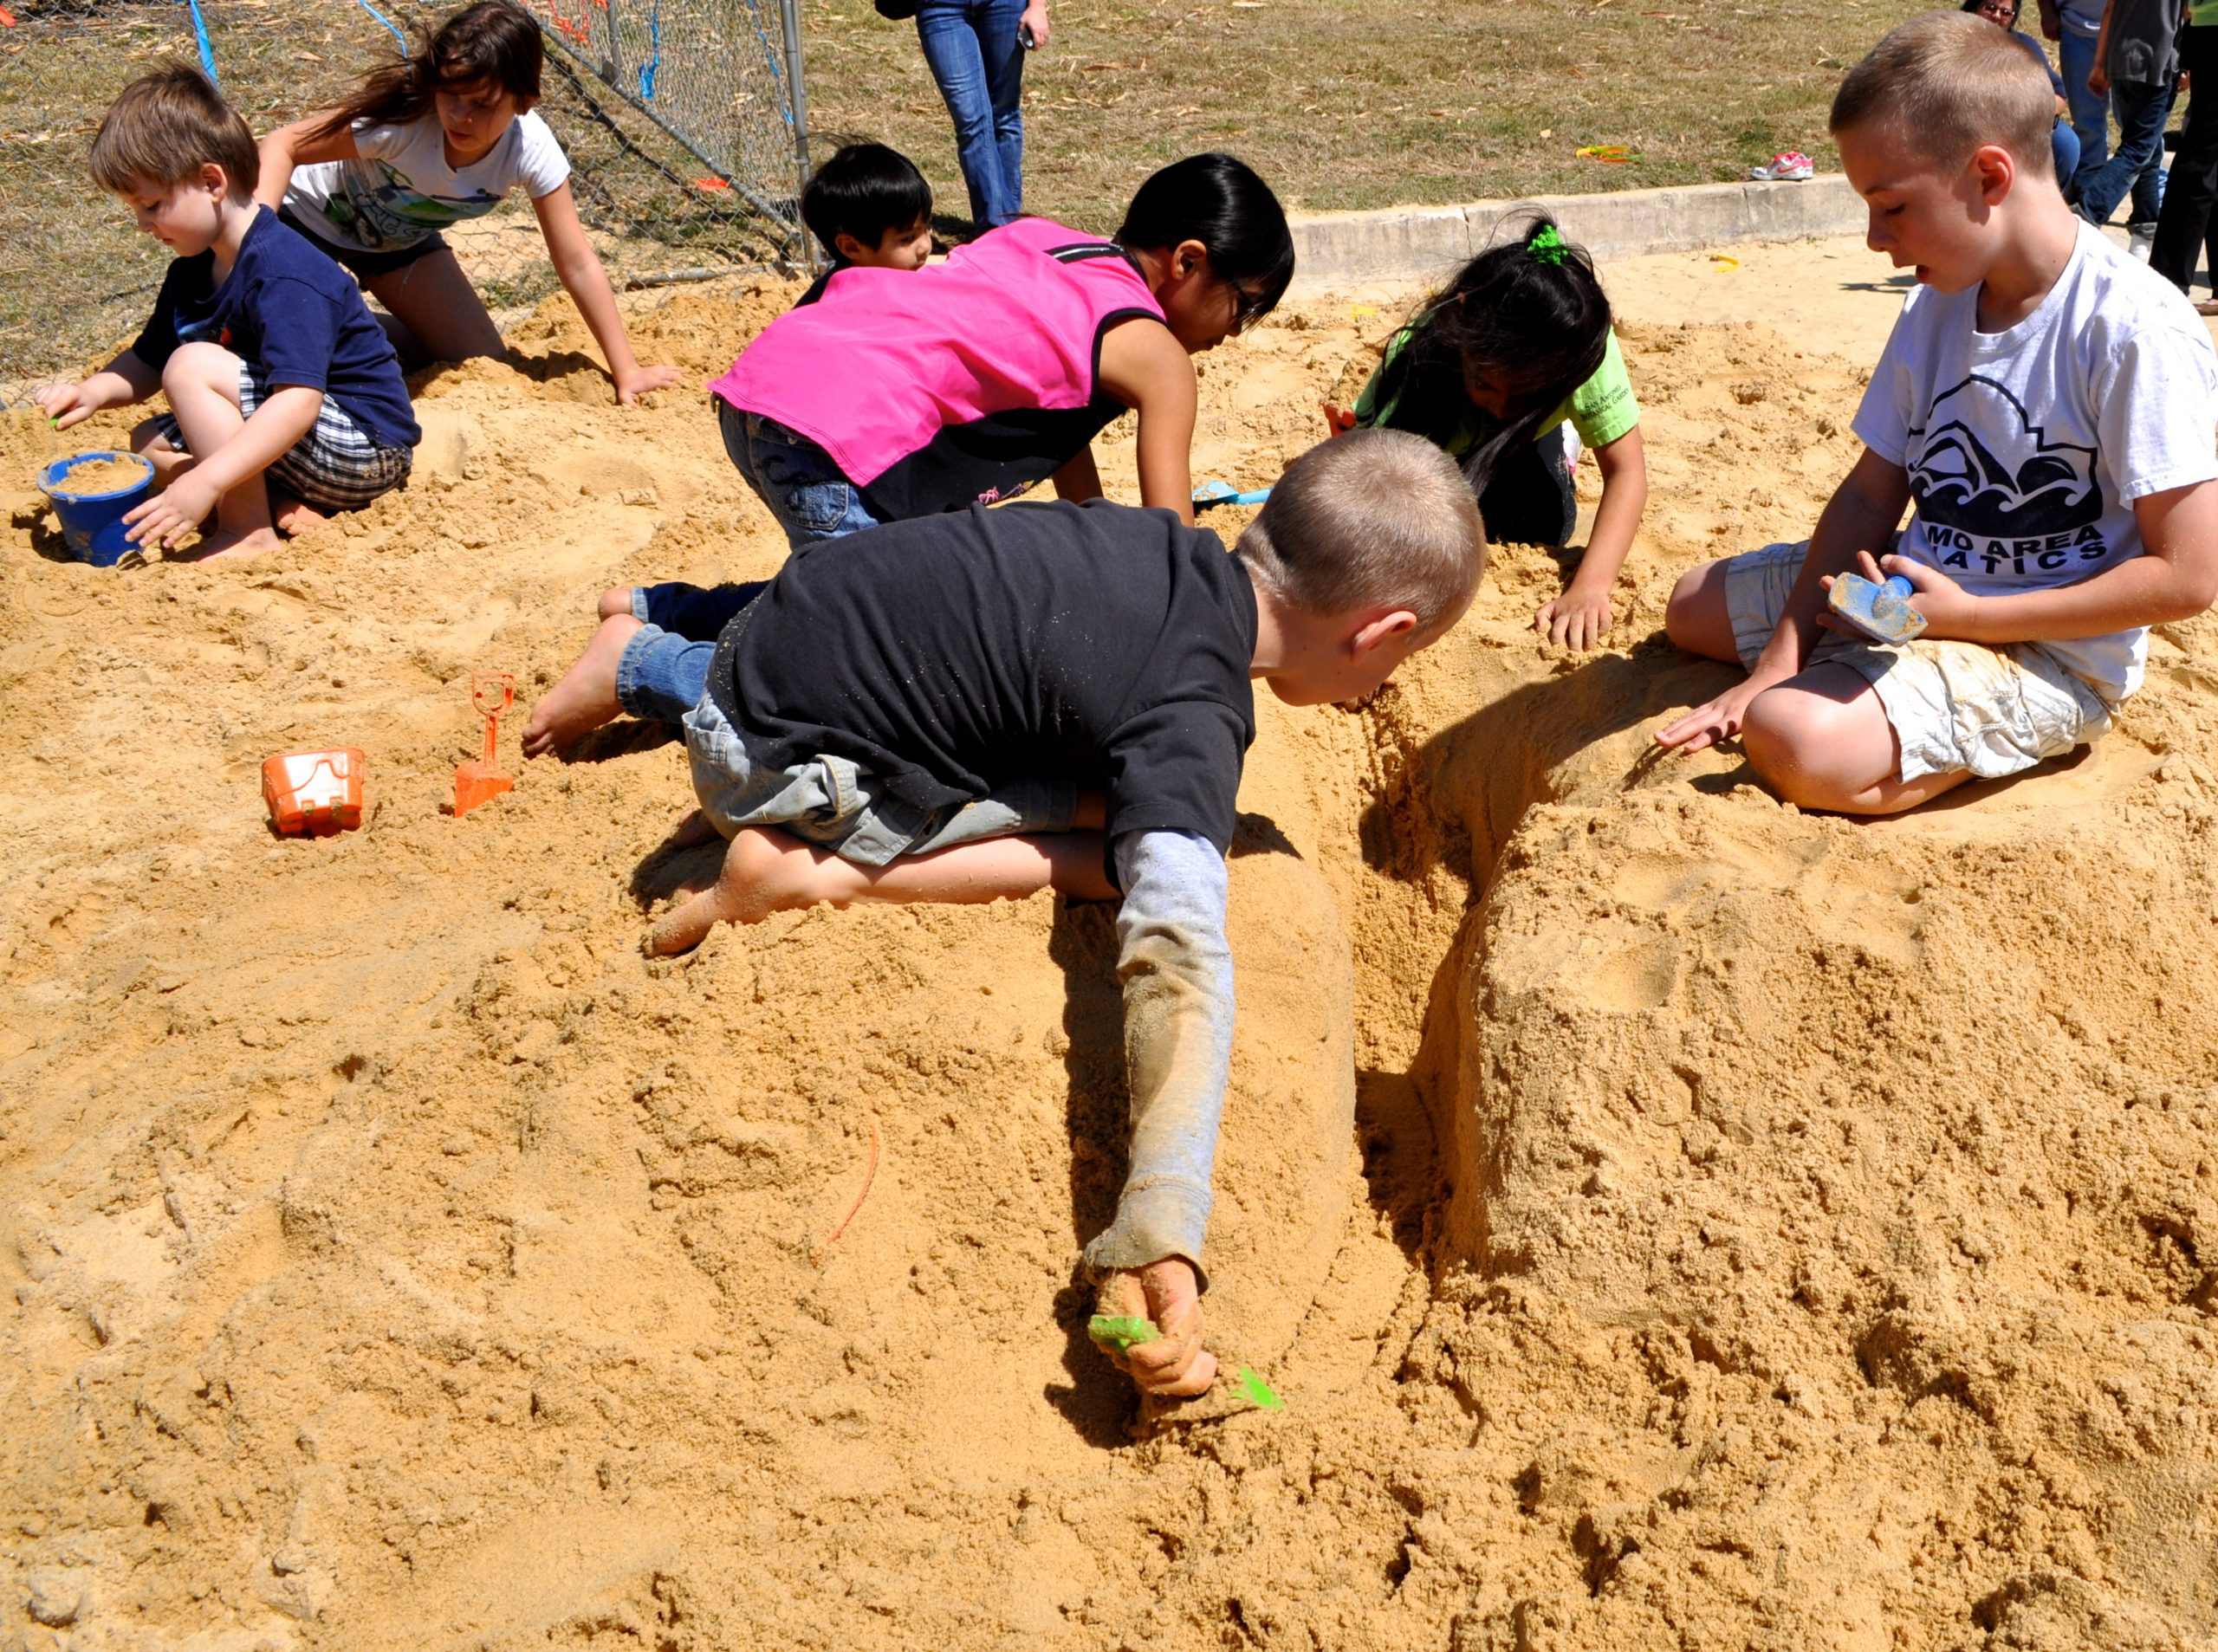 A group of children work to dig the deepest hole in the sand without collapsing in the sides. The project's forman (right), led his team effectively to achieve that goal. Photo by Iris Dimmick.